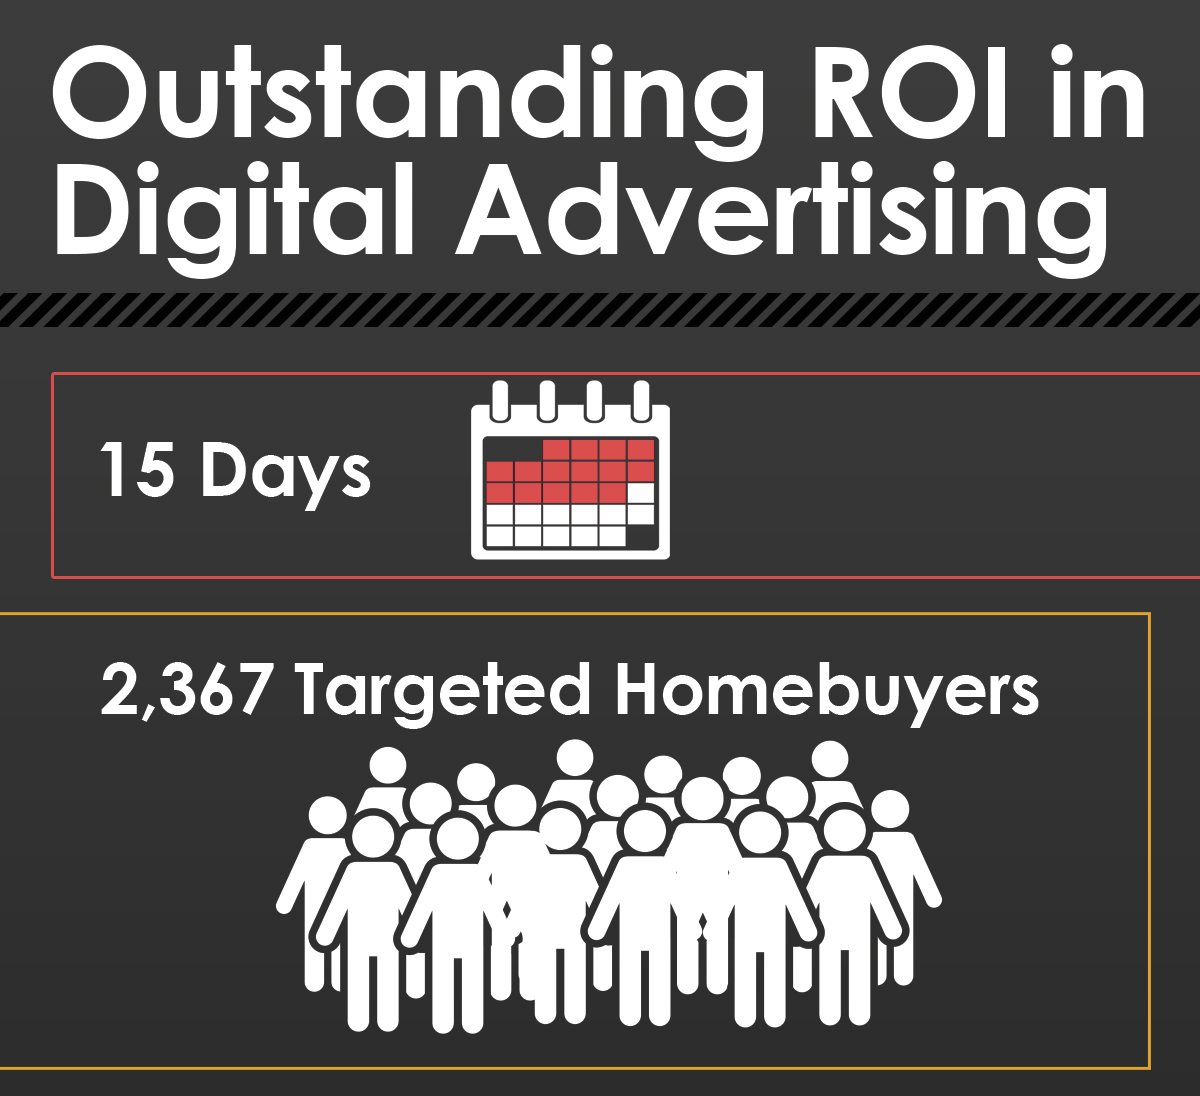 Want This Kind Of ROI?